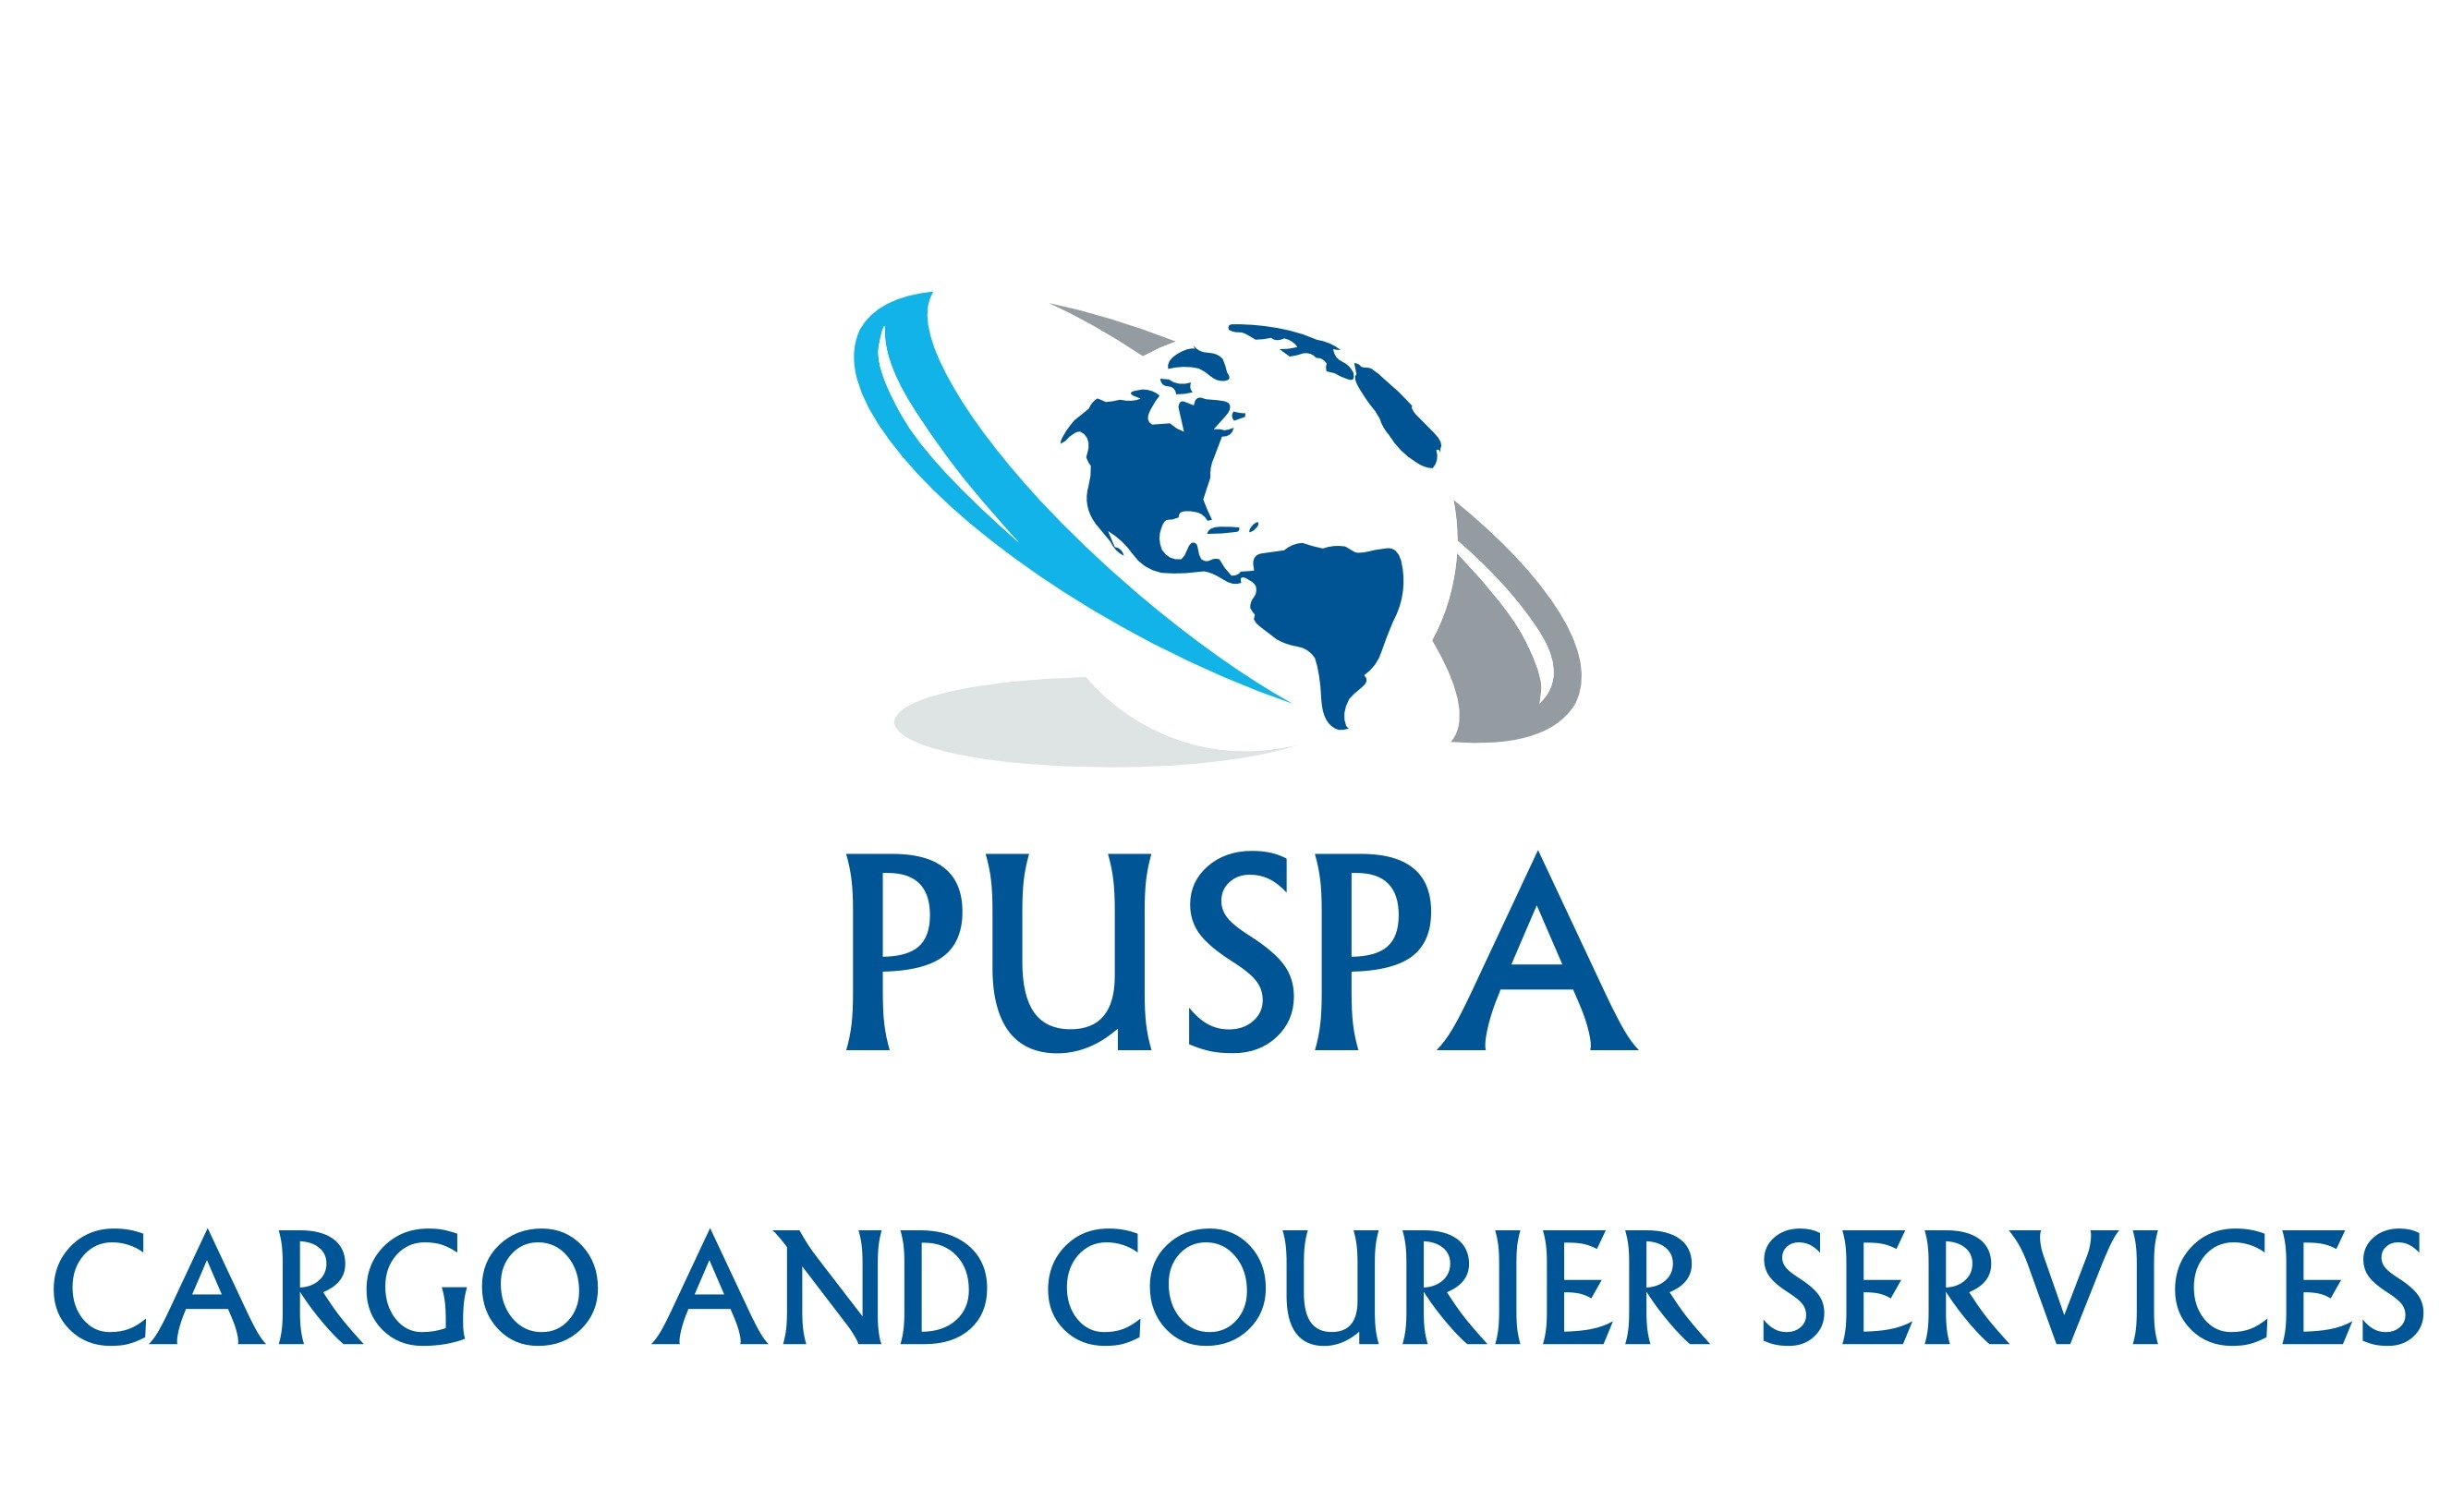 PUSPA CARGO AND COURIER SERVICES